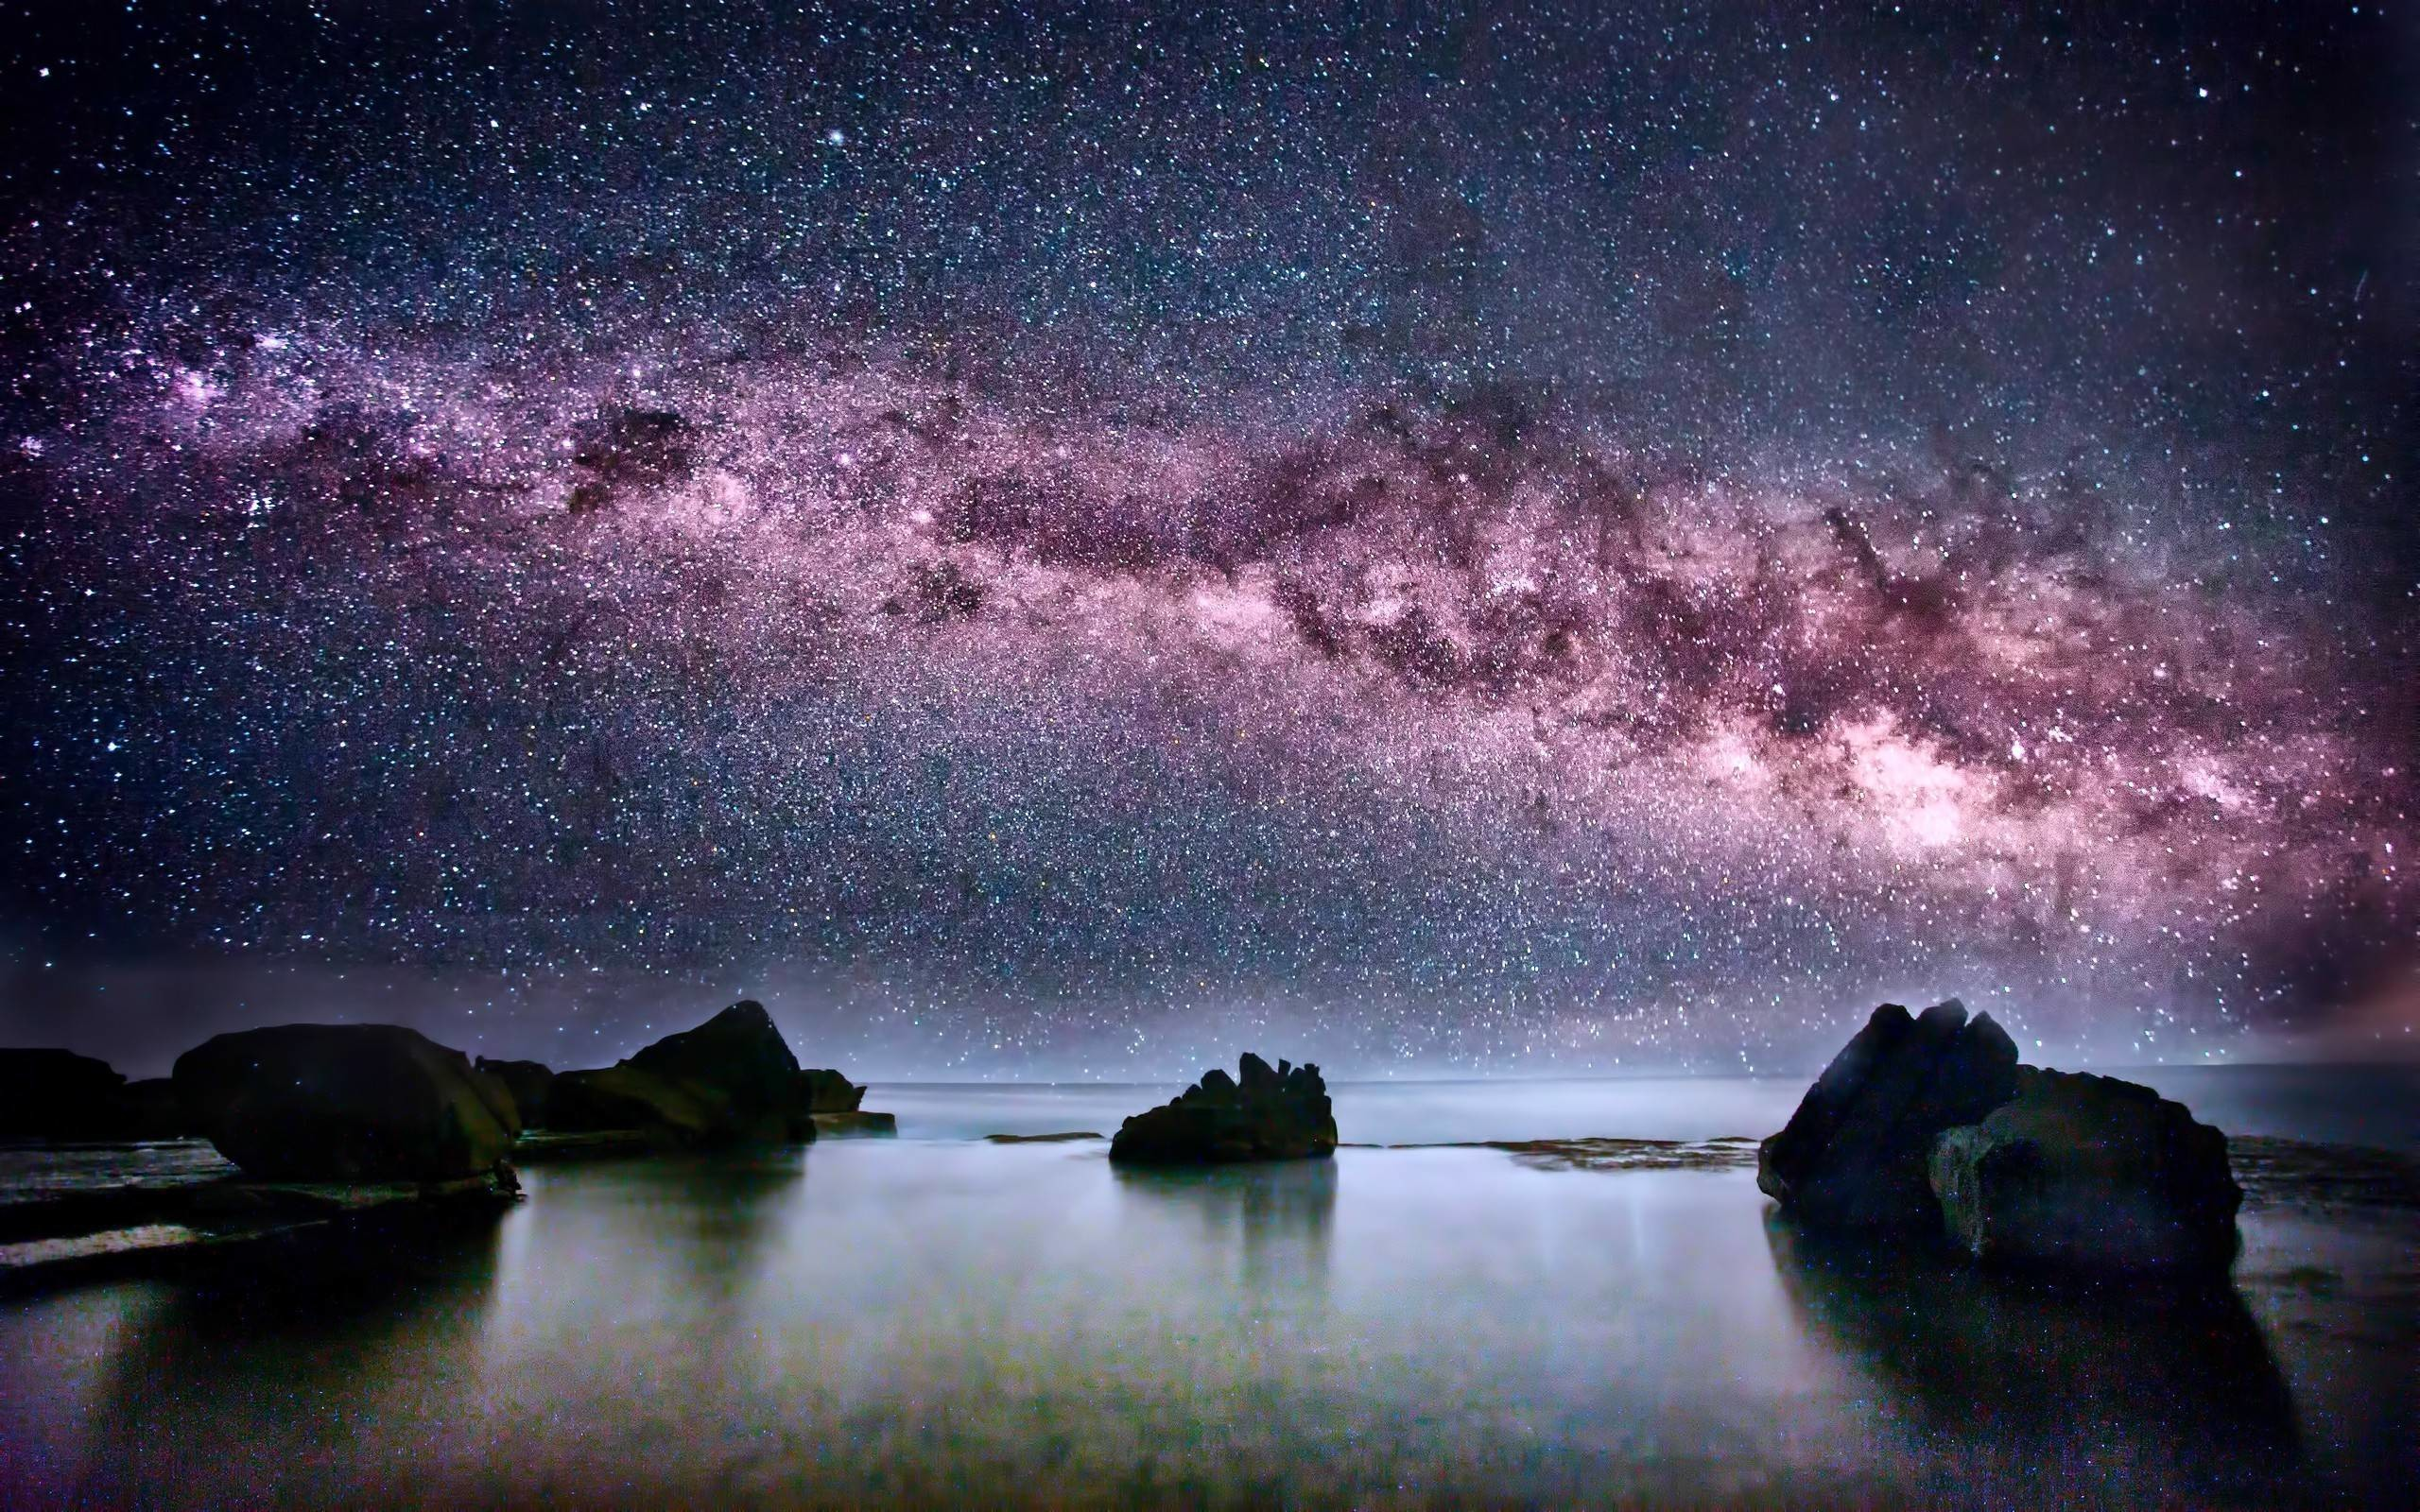 Milky Way Screensaver and Wallpaper (69+ images)